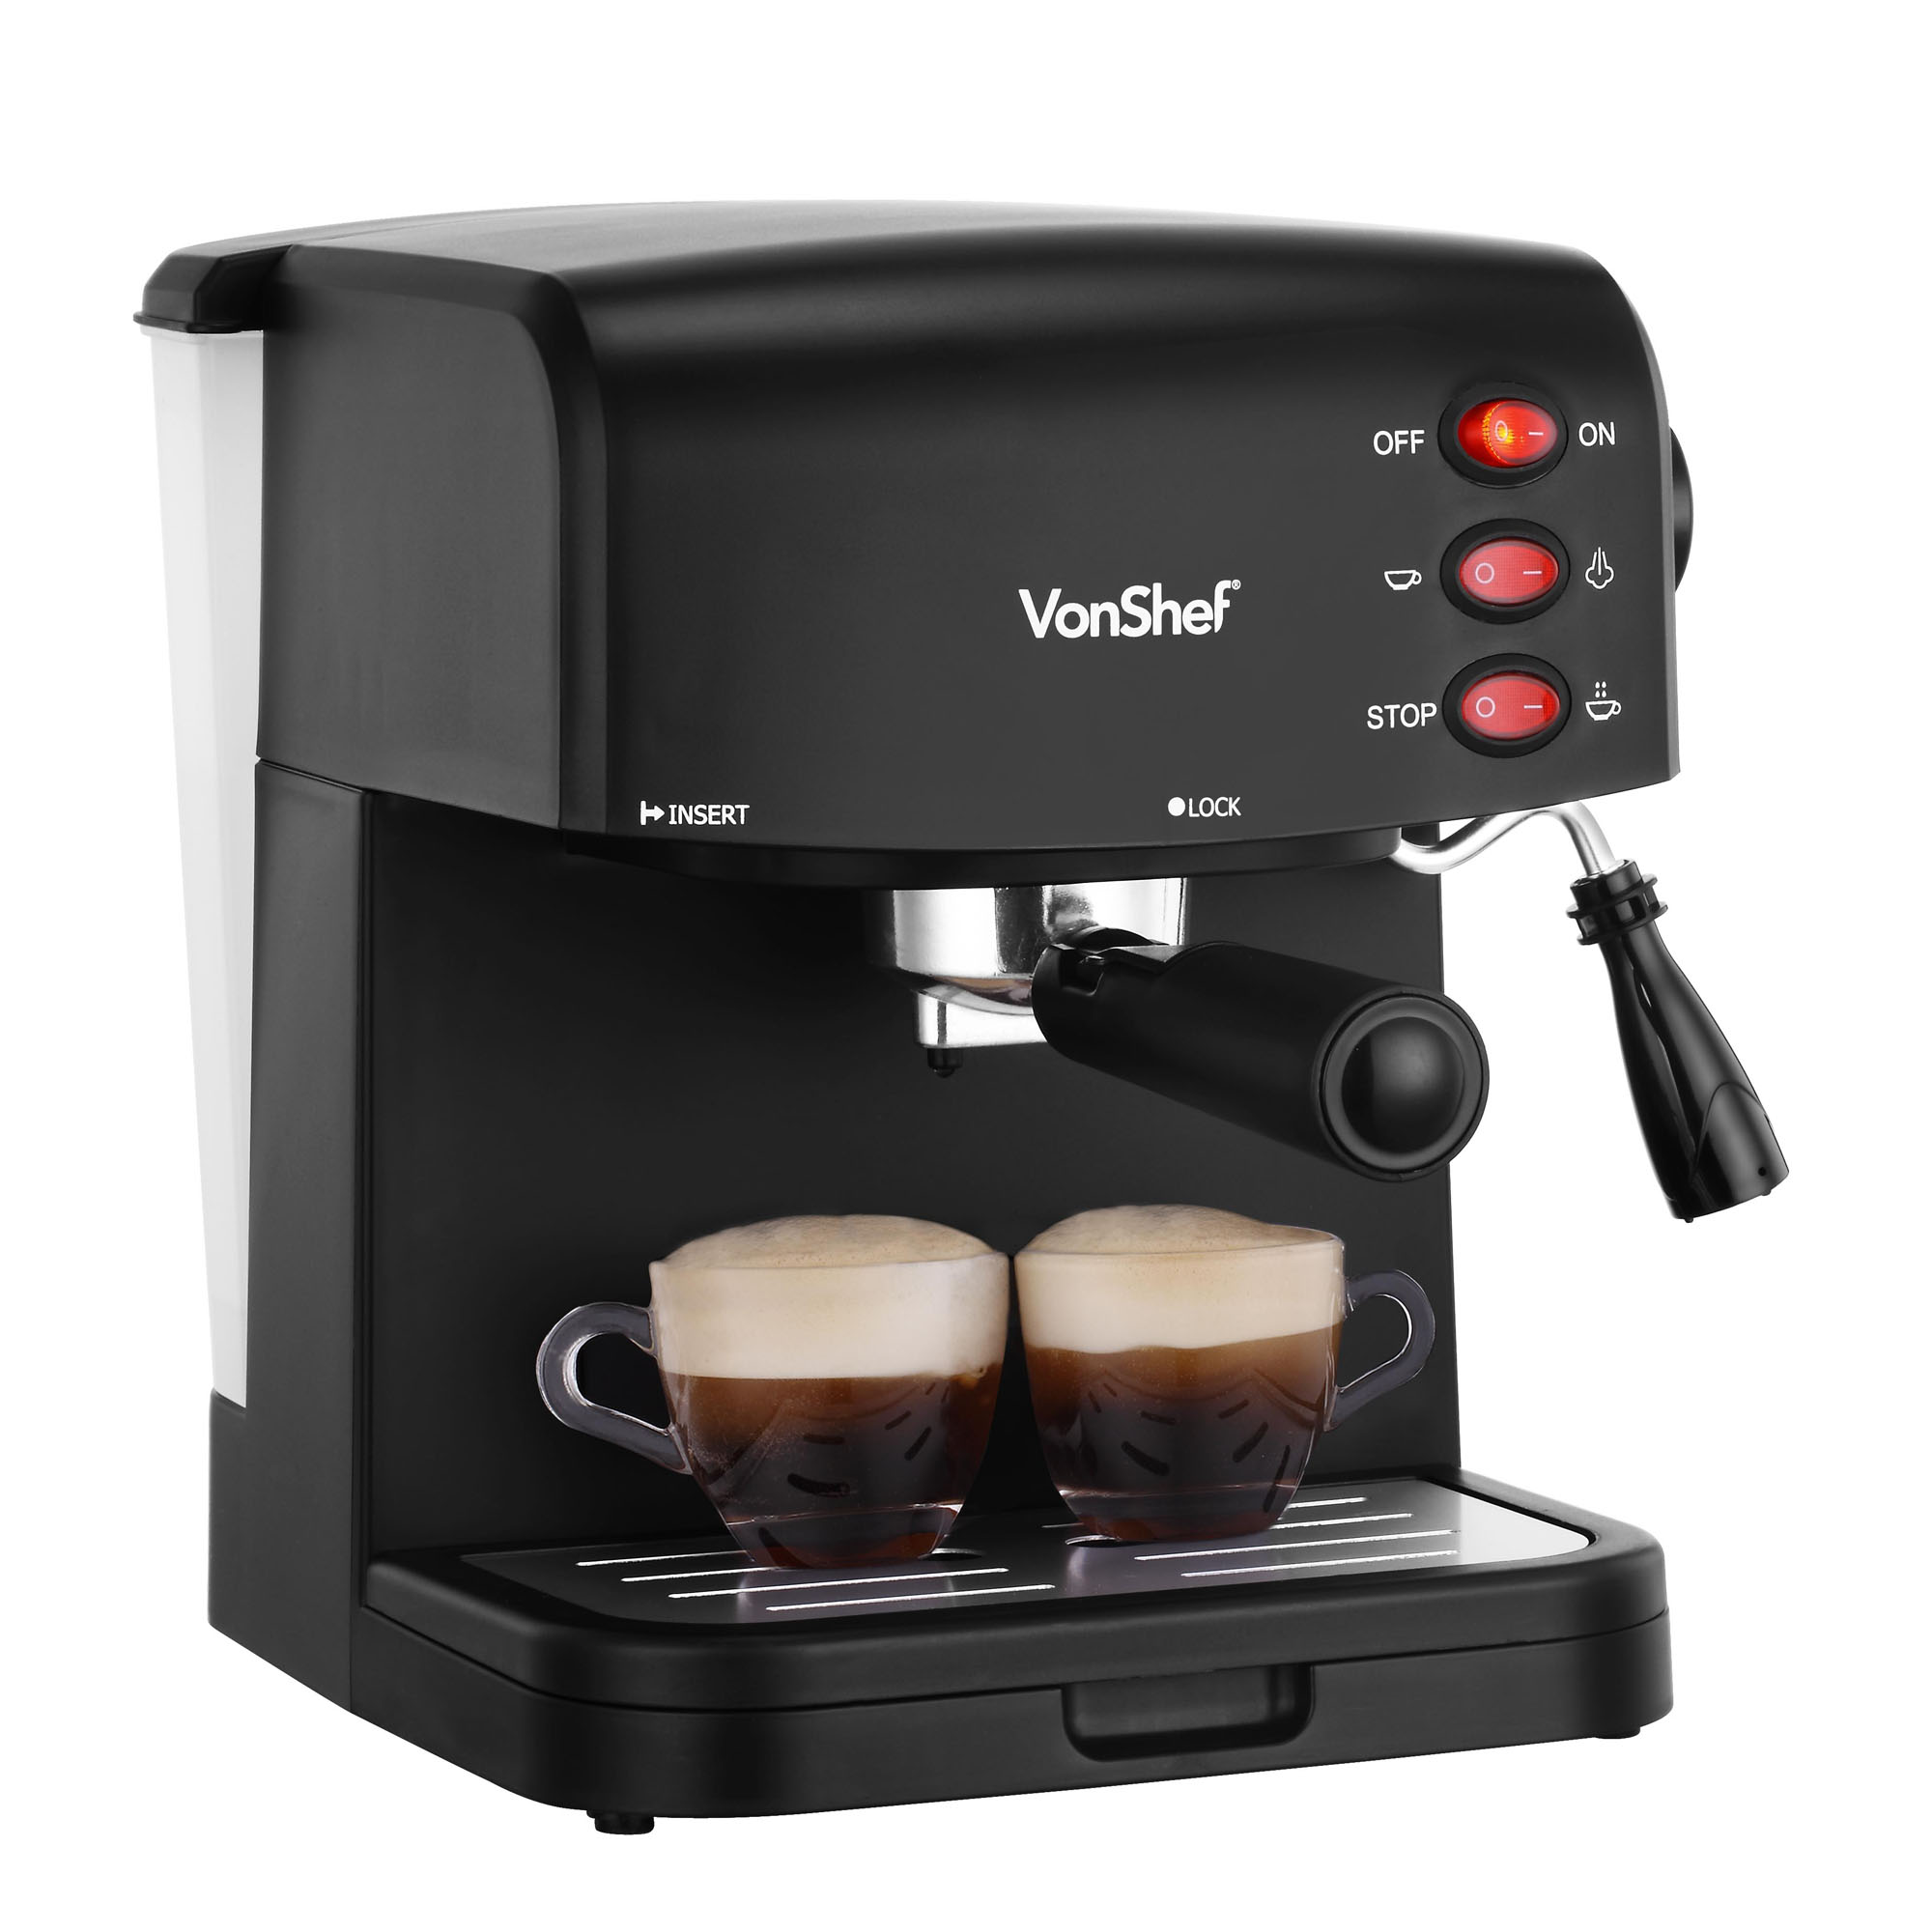 VonShef 15 Bar Espresso Machine Cappuccino Latte Coffee Maker 850W Black eBay